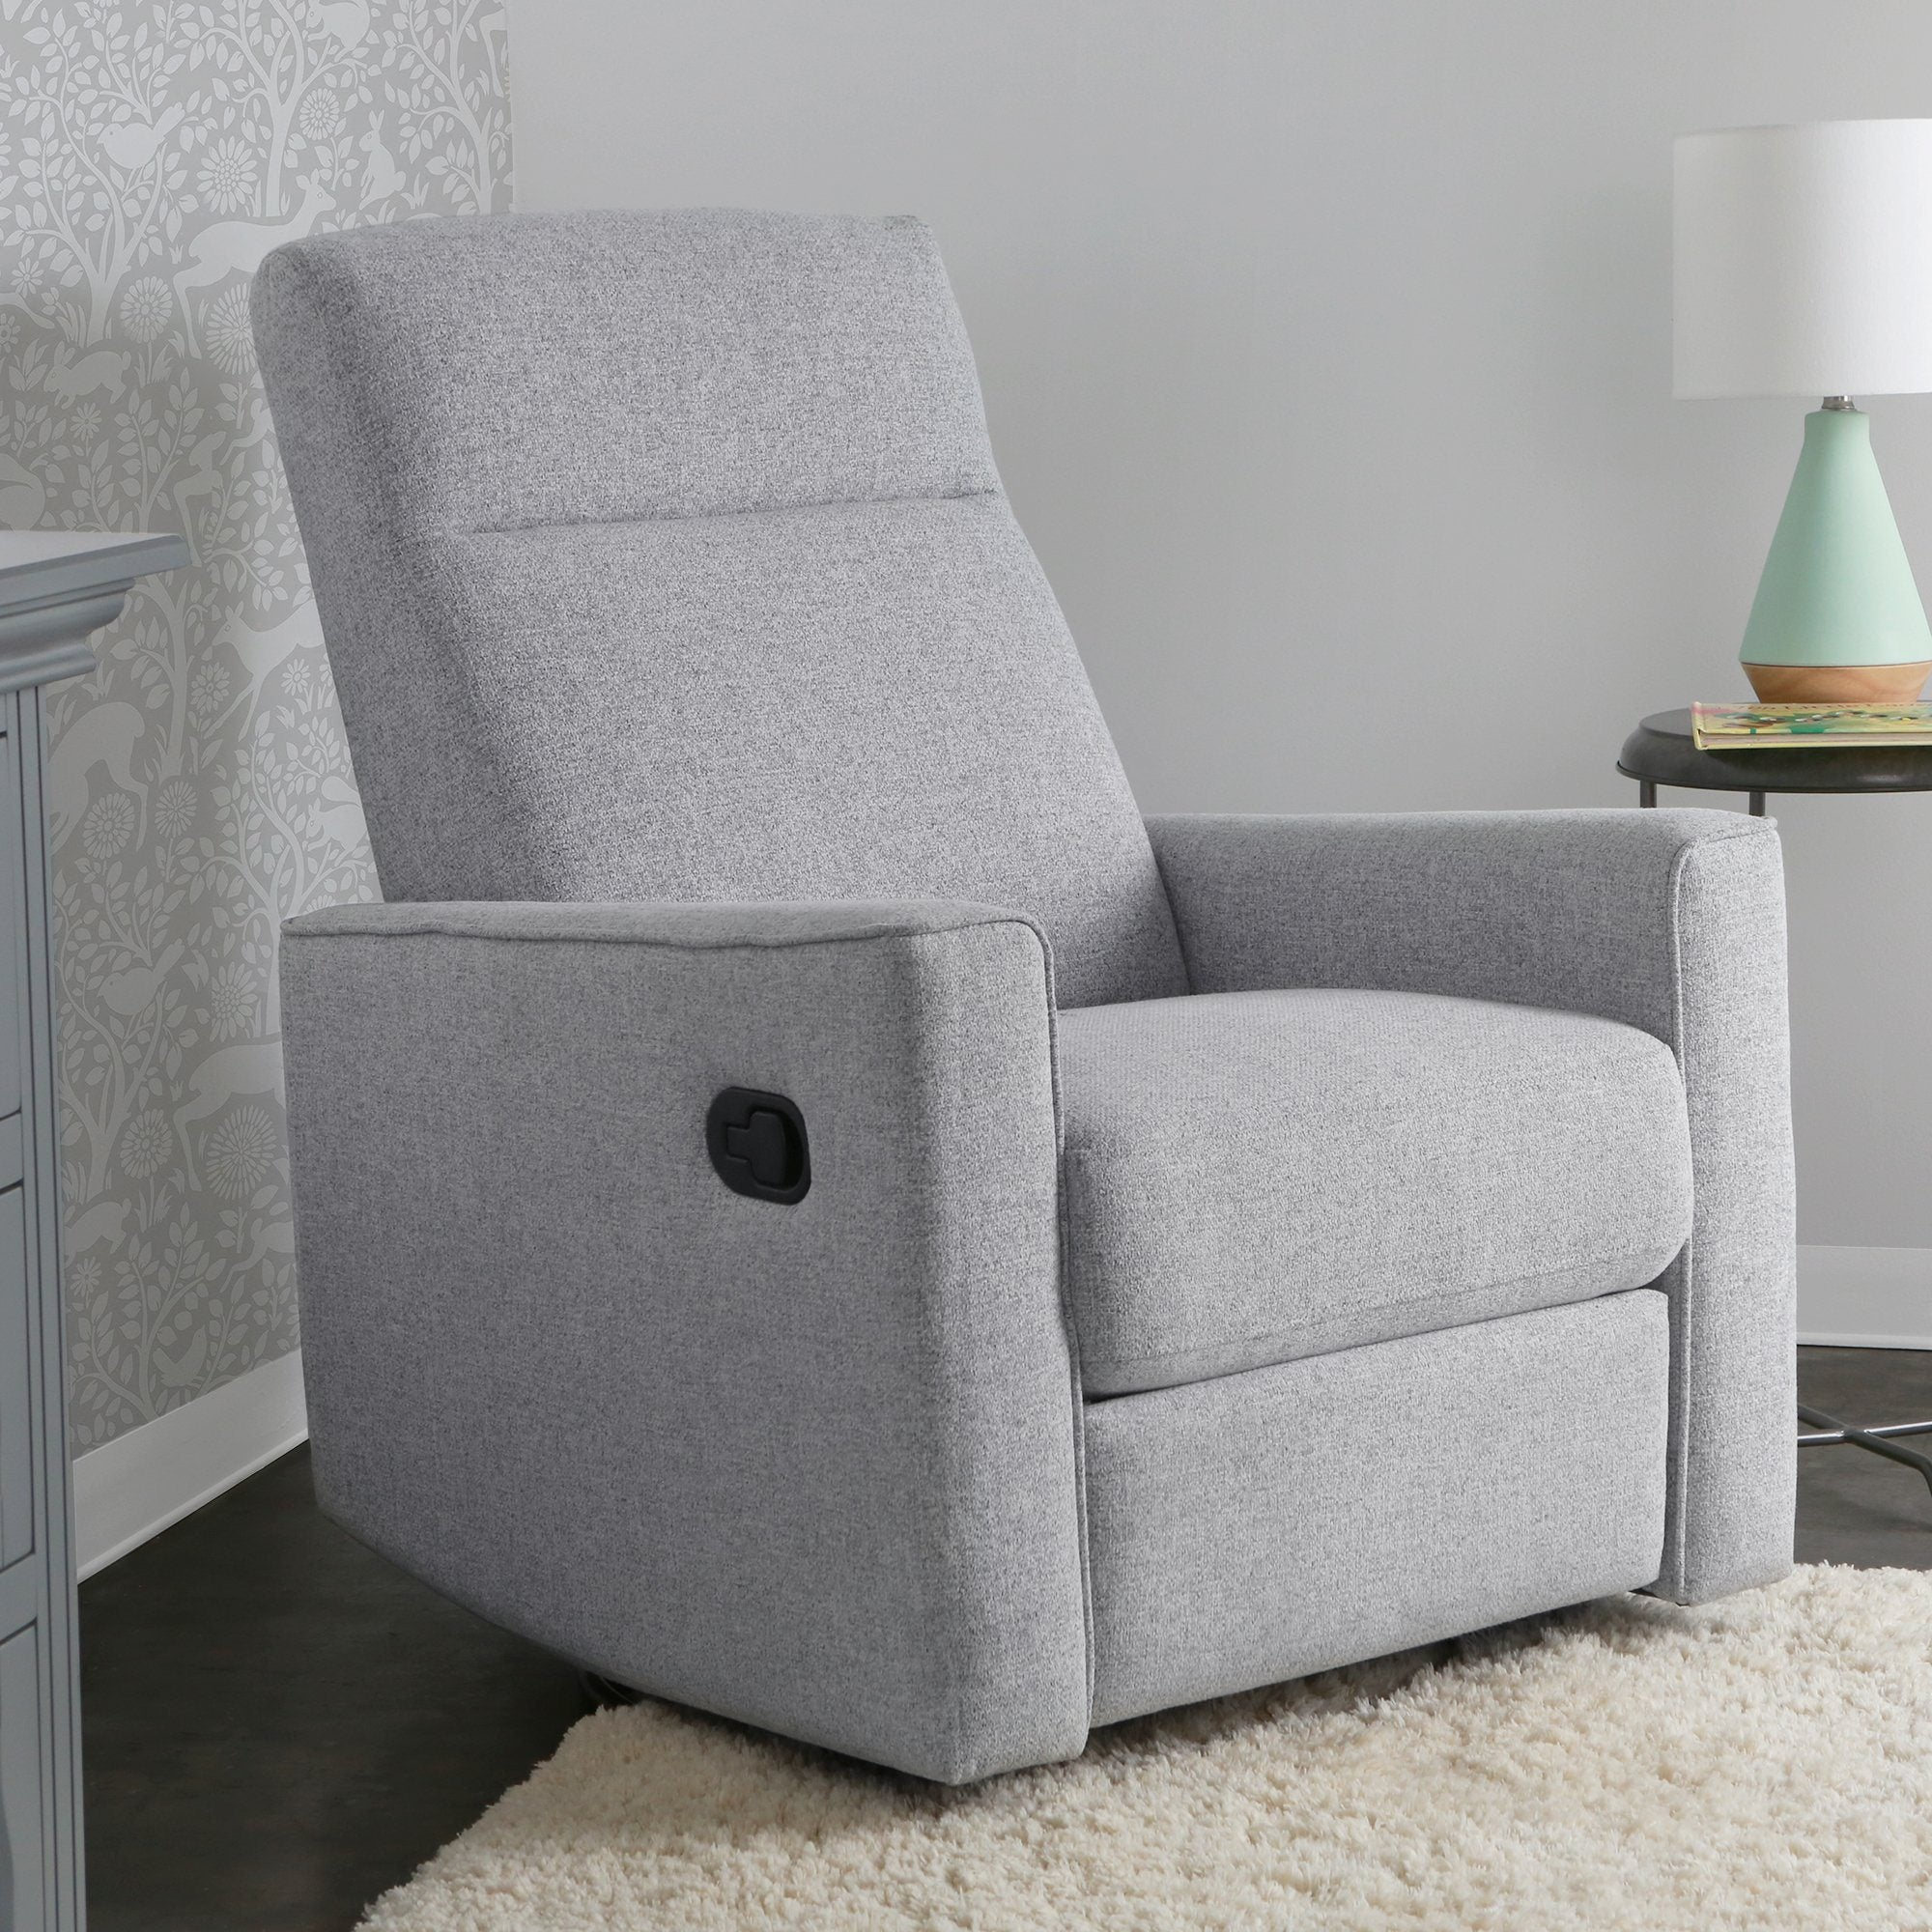 Grove Swivel Glider Recliner - Project Nursery